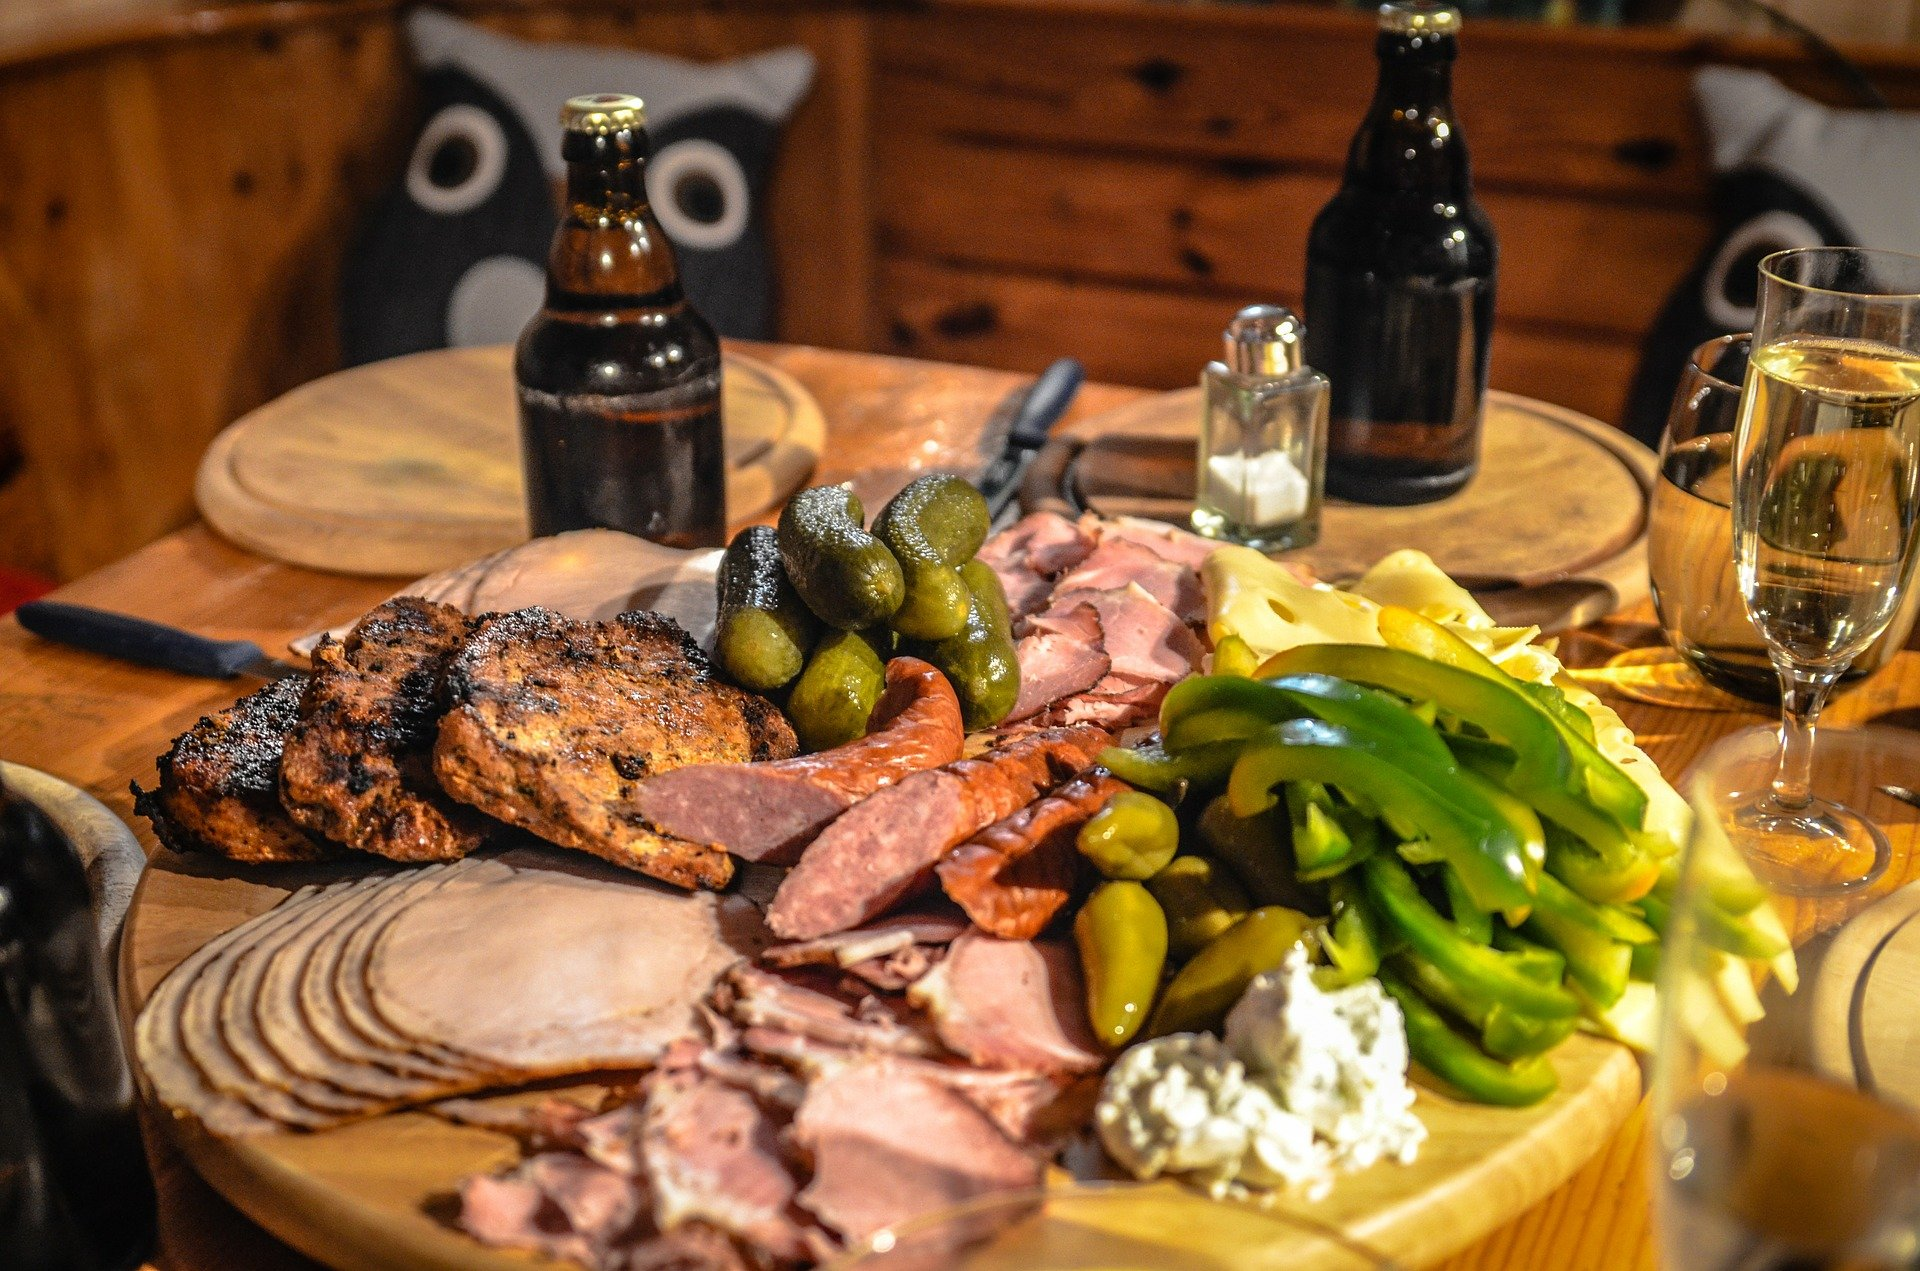 Learn How to Build Your Own Charcuterie Board